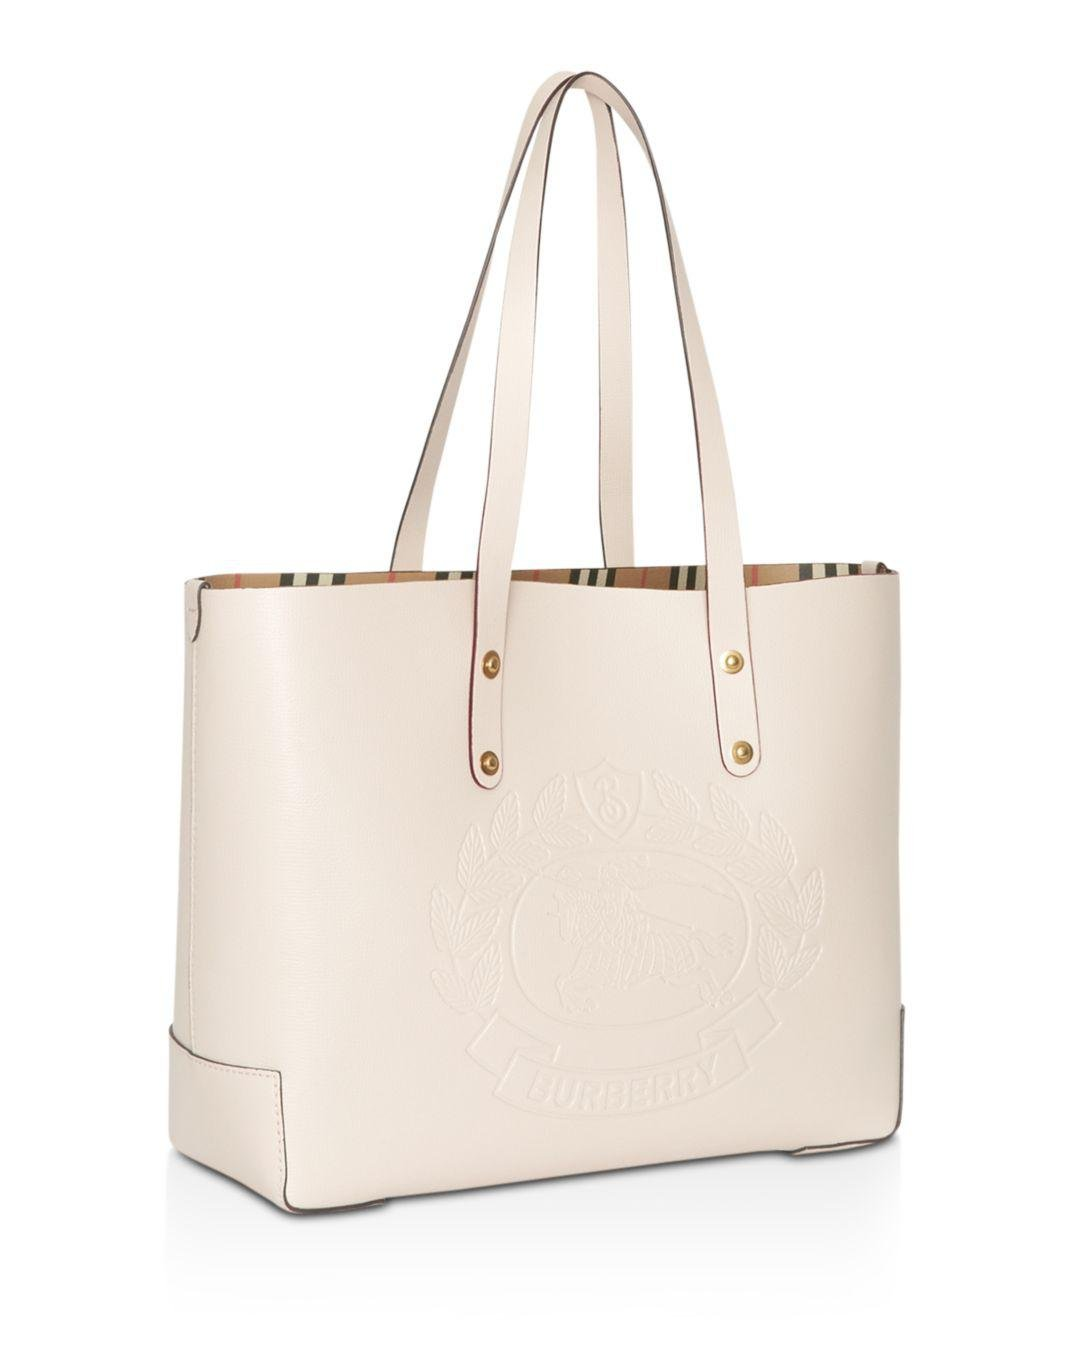 89b3c5031d78 Lyst - Burberry Small Embossed Crest Leather Tote